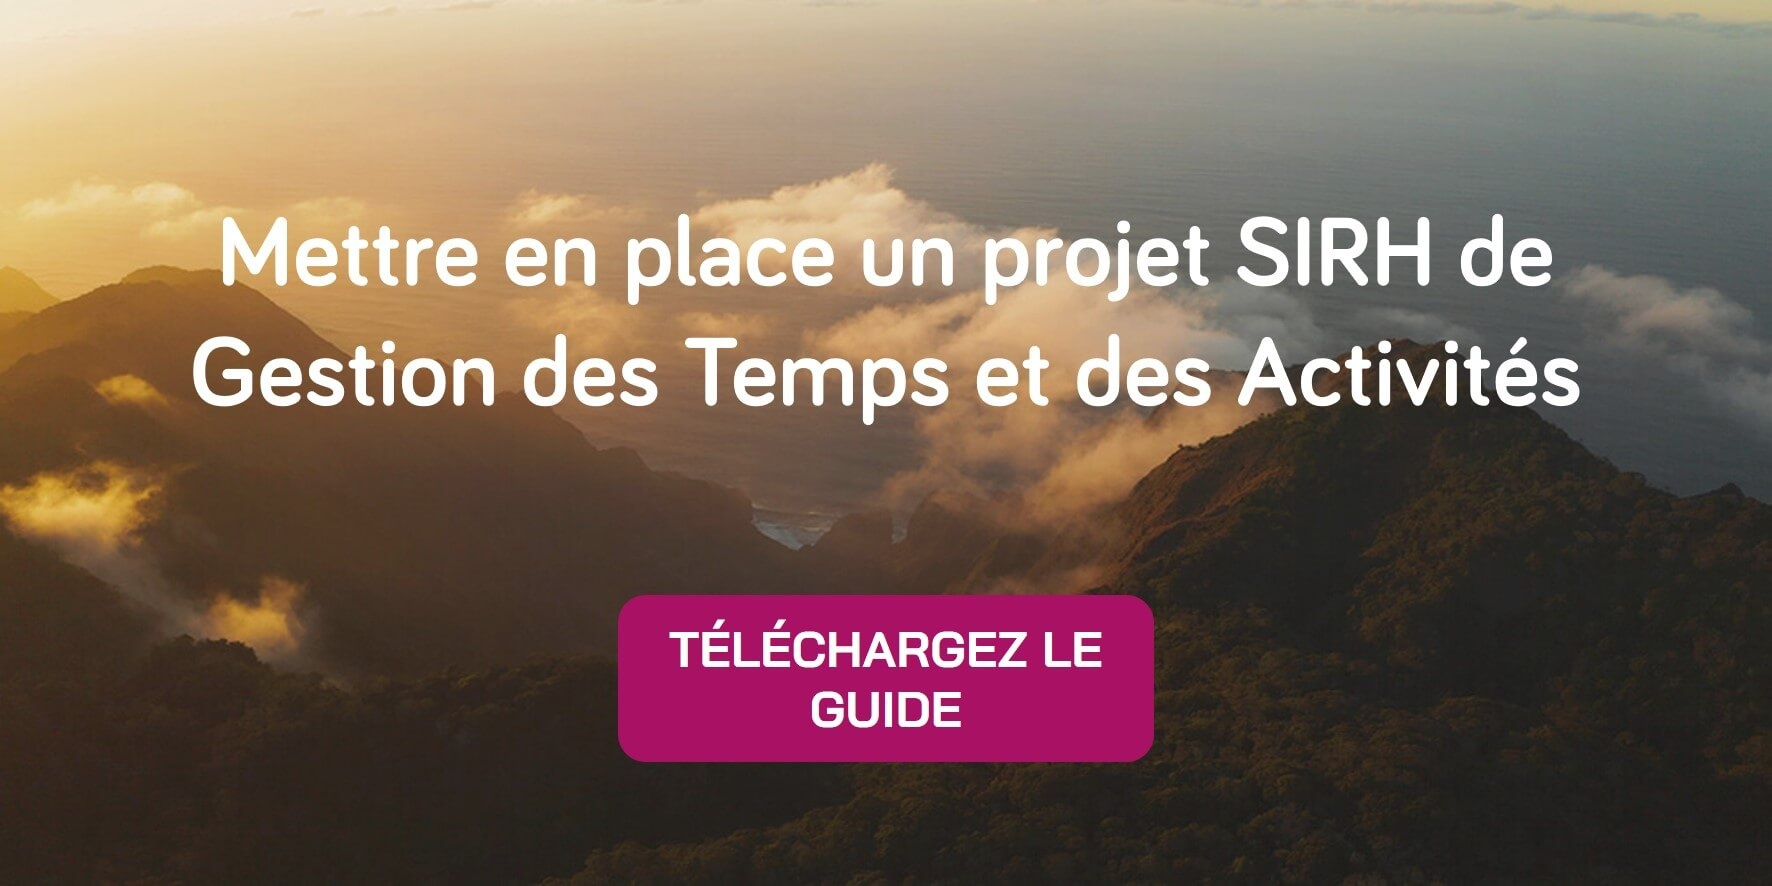 guide-gestion-temps-activites-sirh-rh